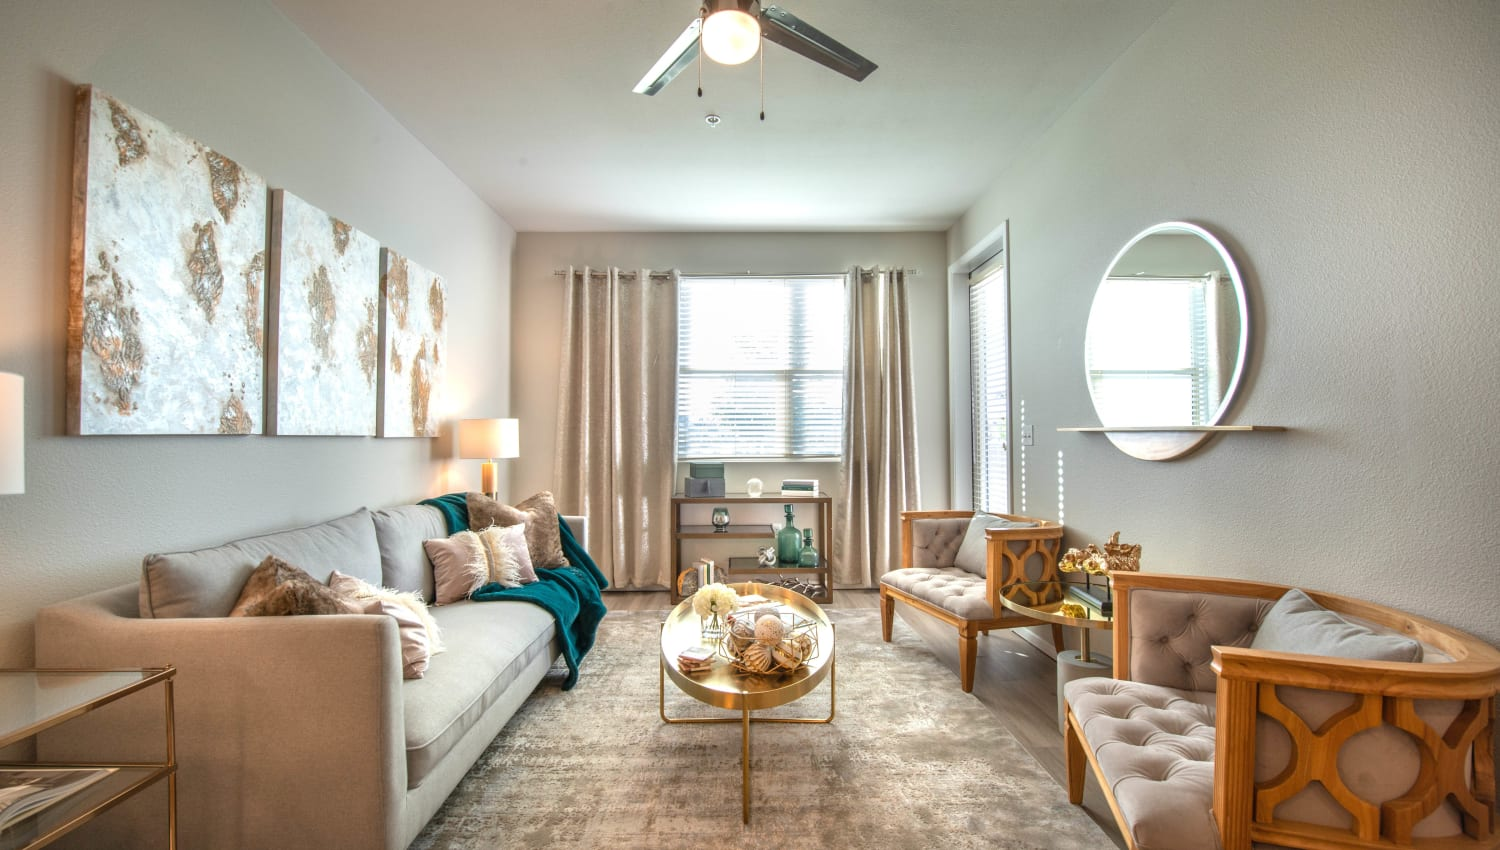 Ceiling fan and comfortable furnishings in the living space of a model home at Olympus at Daybreak in South Jordan, Utah